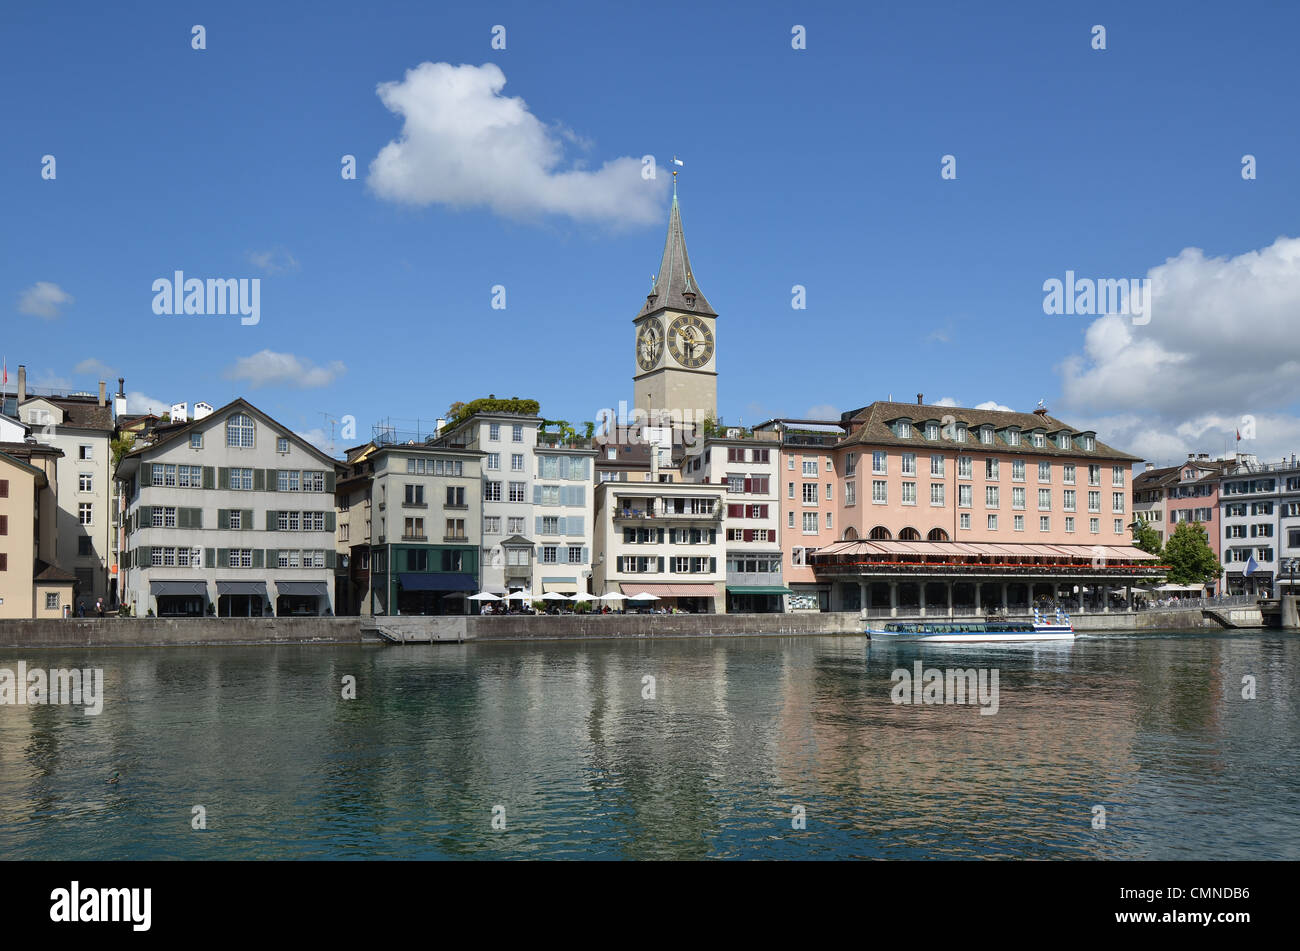 The River Limmat waterfront of Zurich with the spire of St. Peters church. - Stock Image